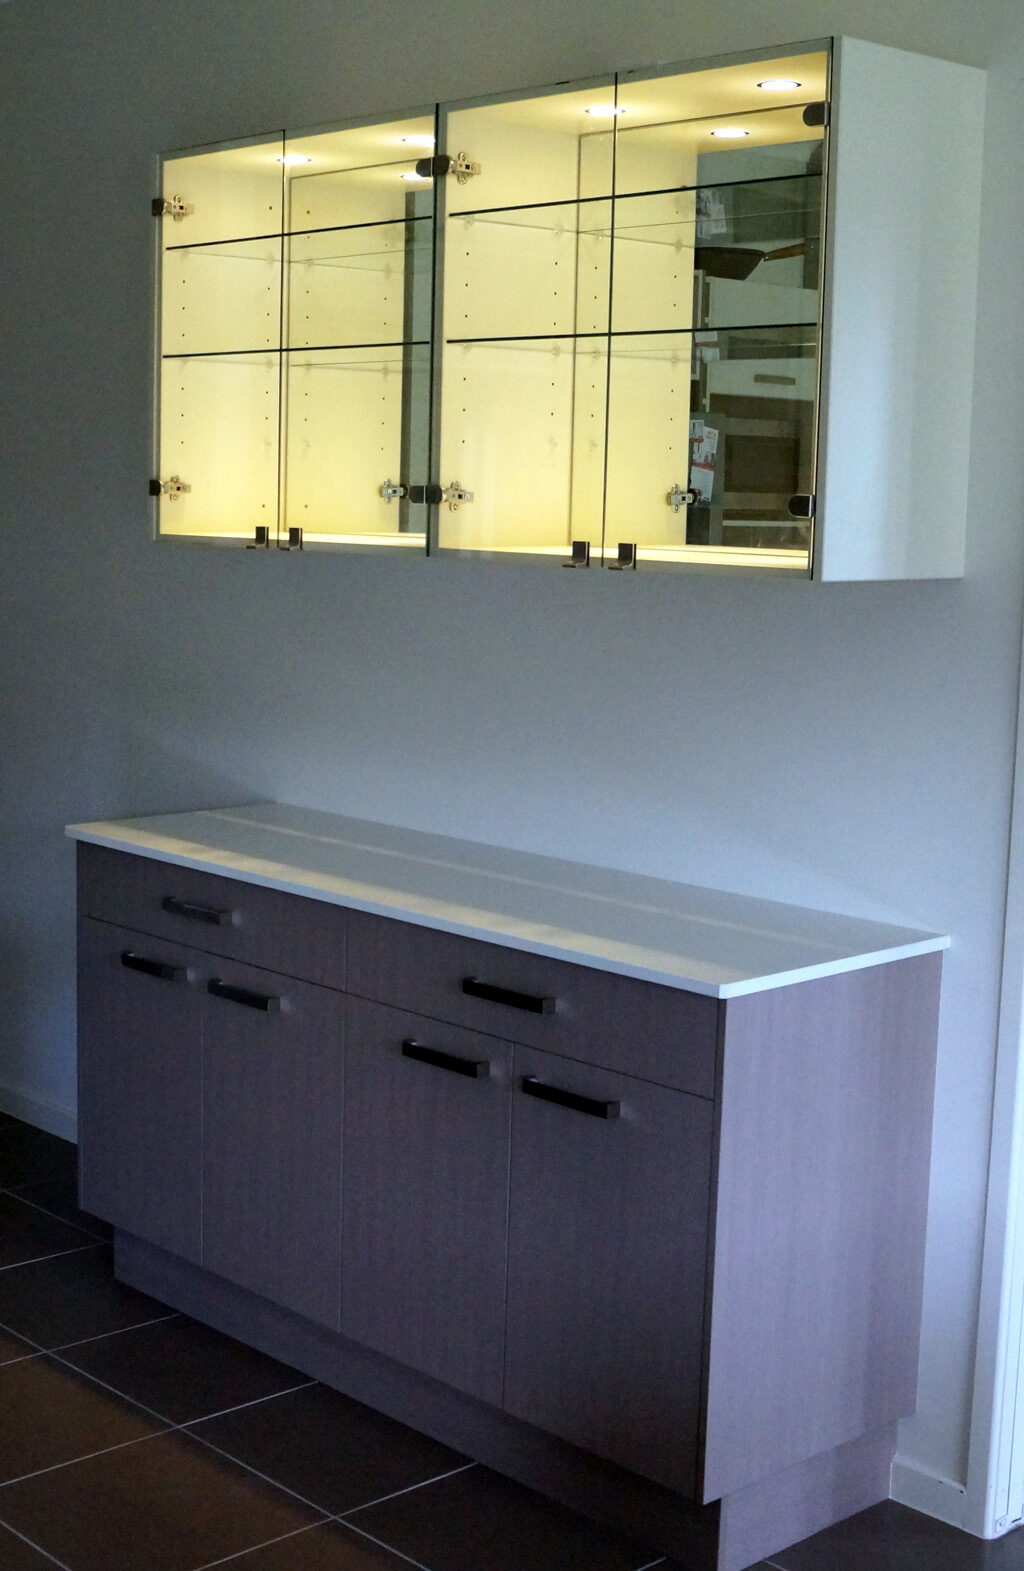 Living Room Sideboards And Cabinets Living Room Entertainment Units Sideboards Cabinets Mike Design